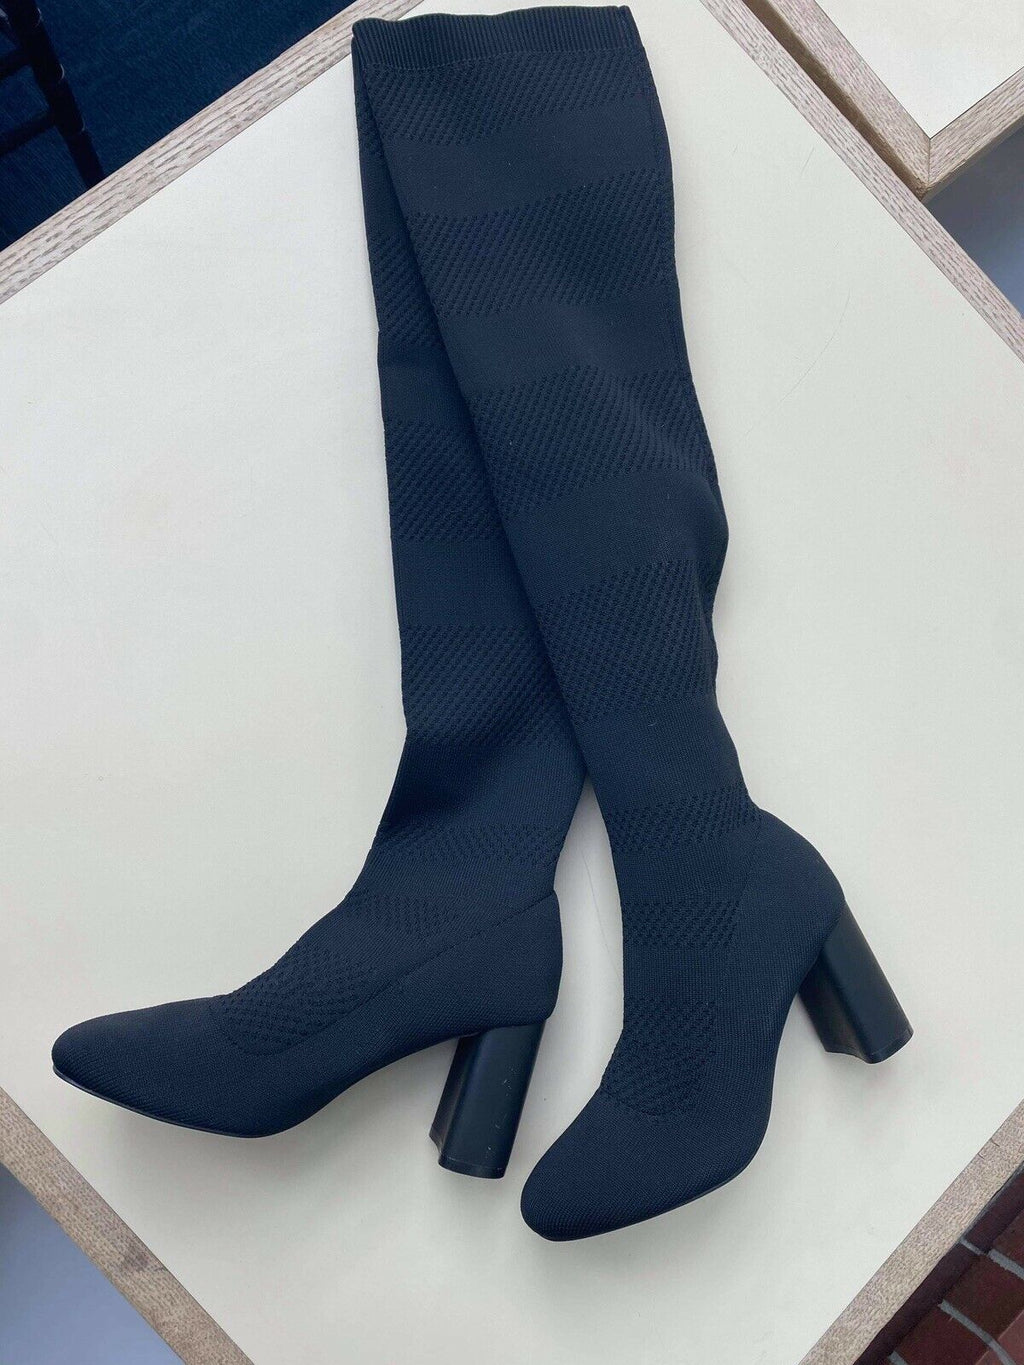 Zara Womens Size 5.5 Black Boots Knitted Over-Knees Sock Boot High Heel Shoes